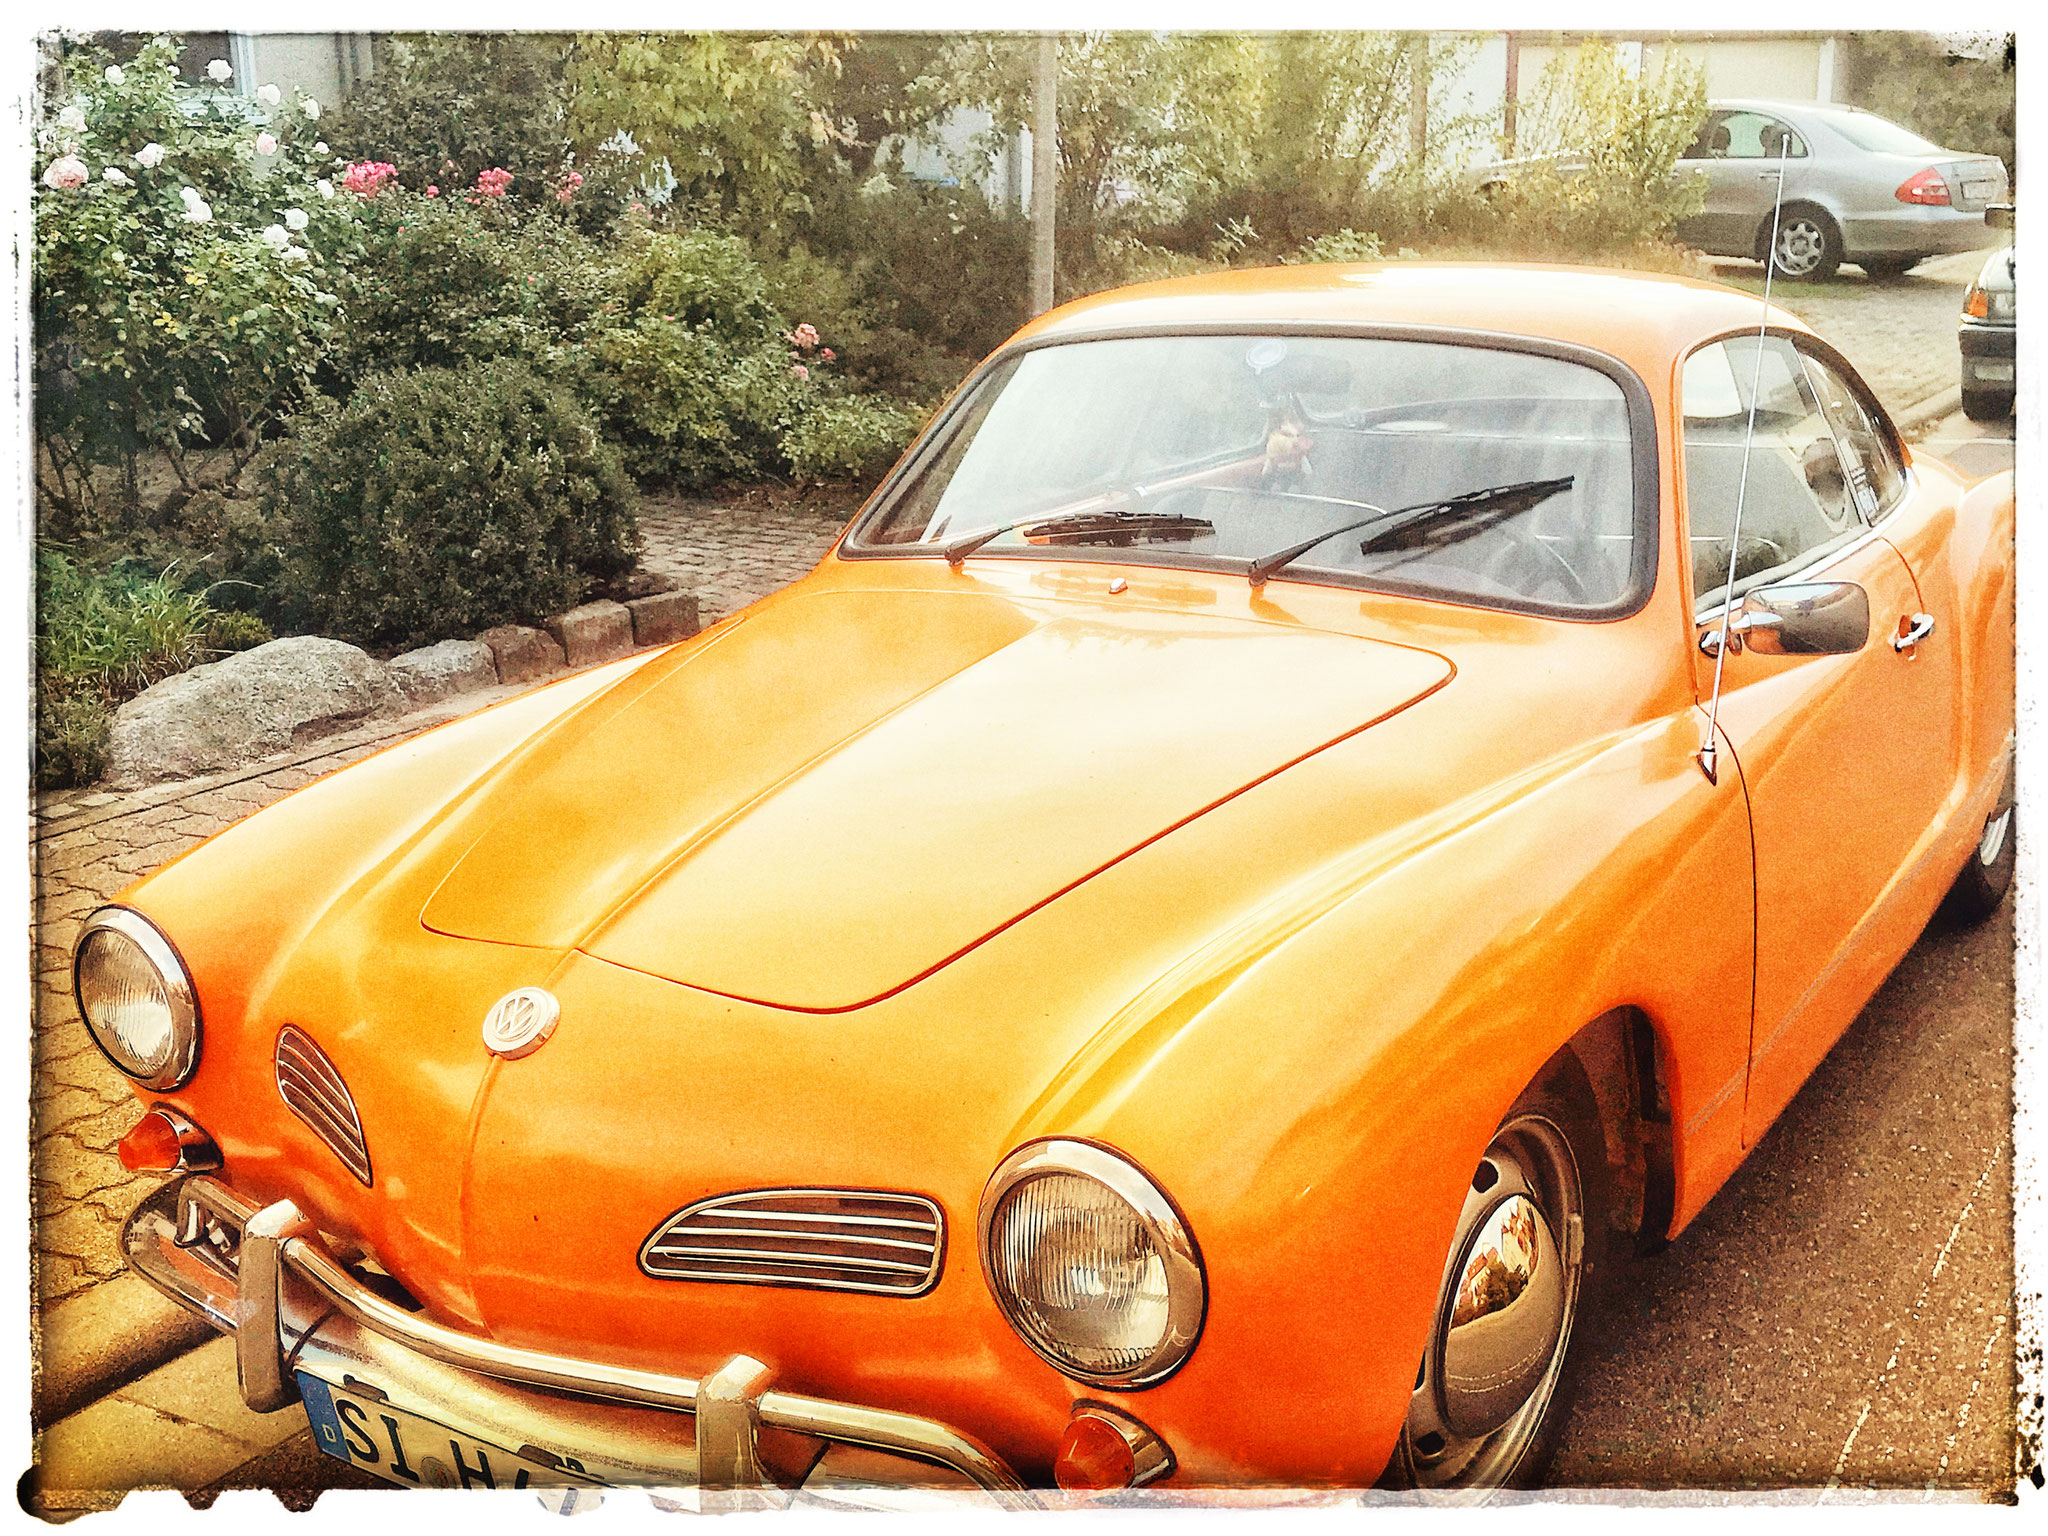 VW 1505 Kharmann Ghia in Orange. Carspotting Speyer